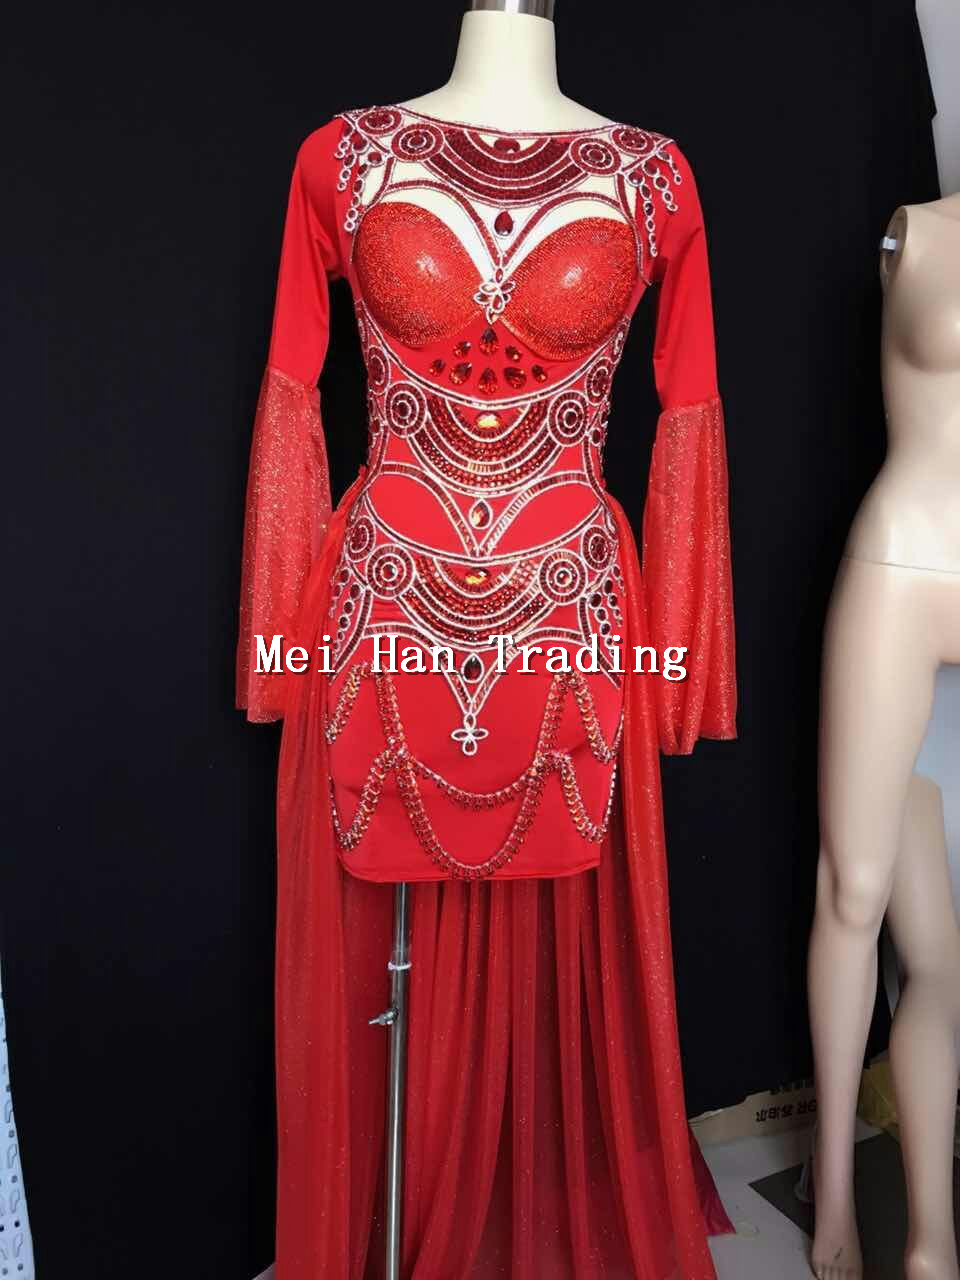 2016 New Red Sequins Glisten Dress Costume Long Sleeves Rhinestone Dresses Party Bright Dance wear Nightclub Performance Dress